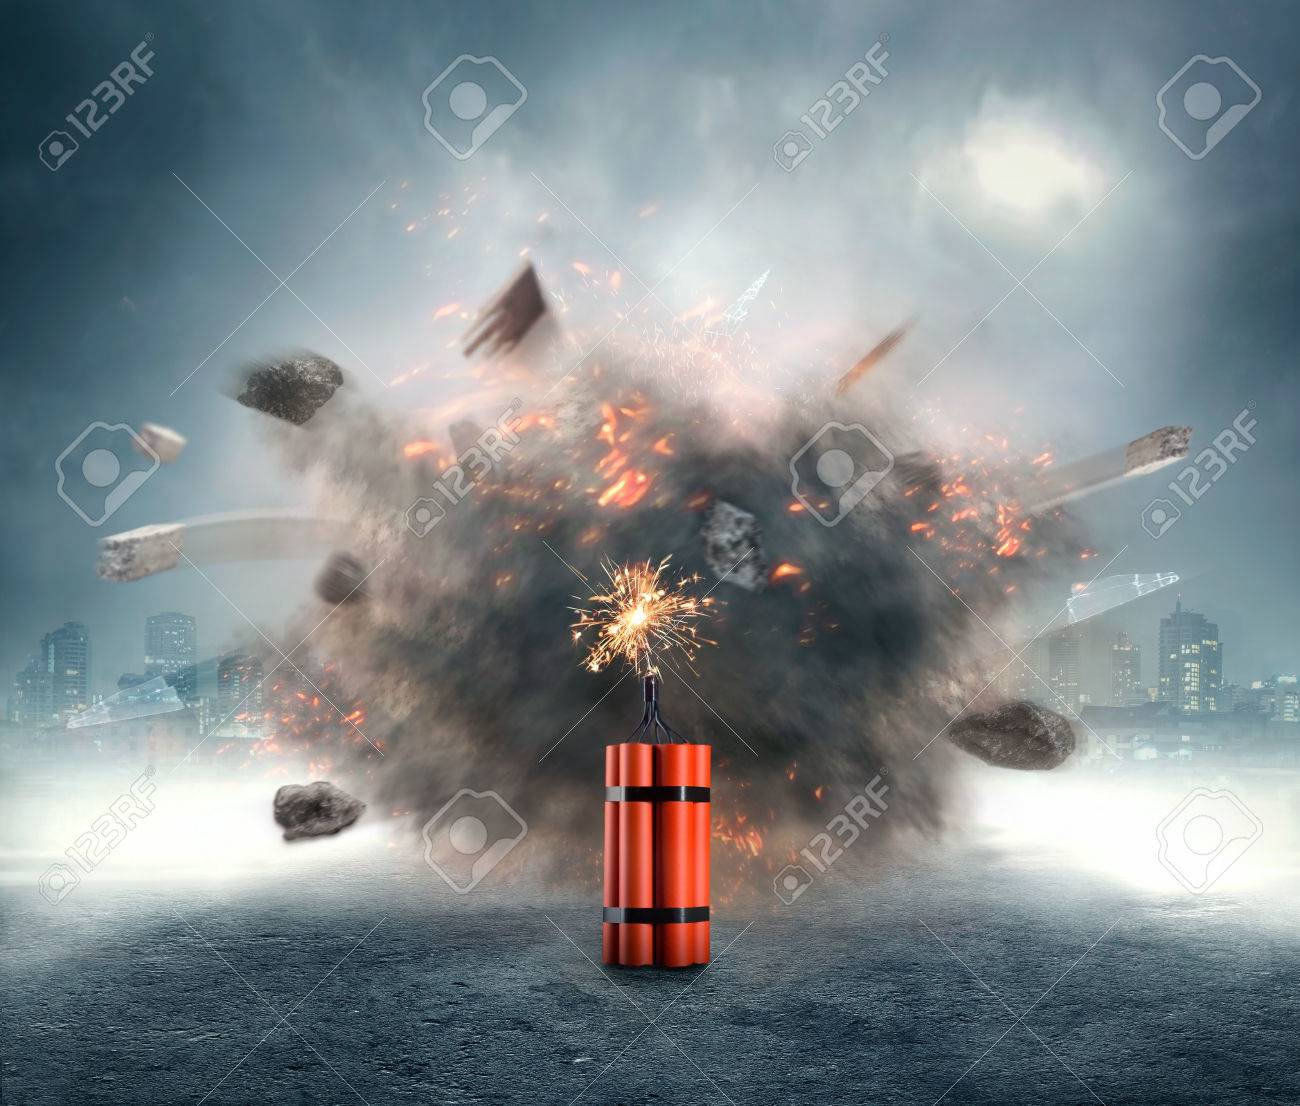 Dangerous dynamite exploding in the urban area - 46728999